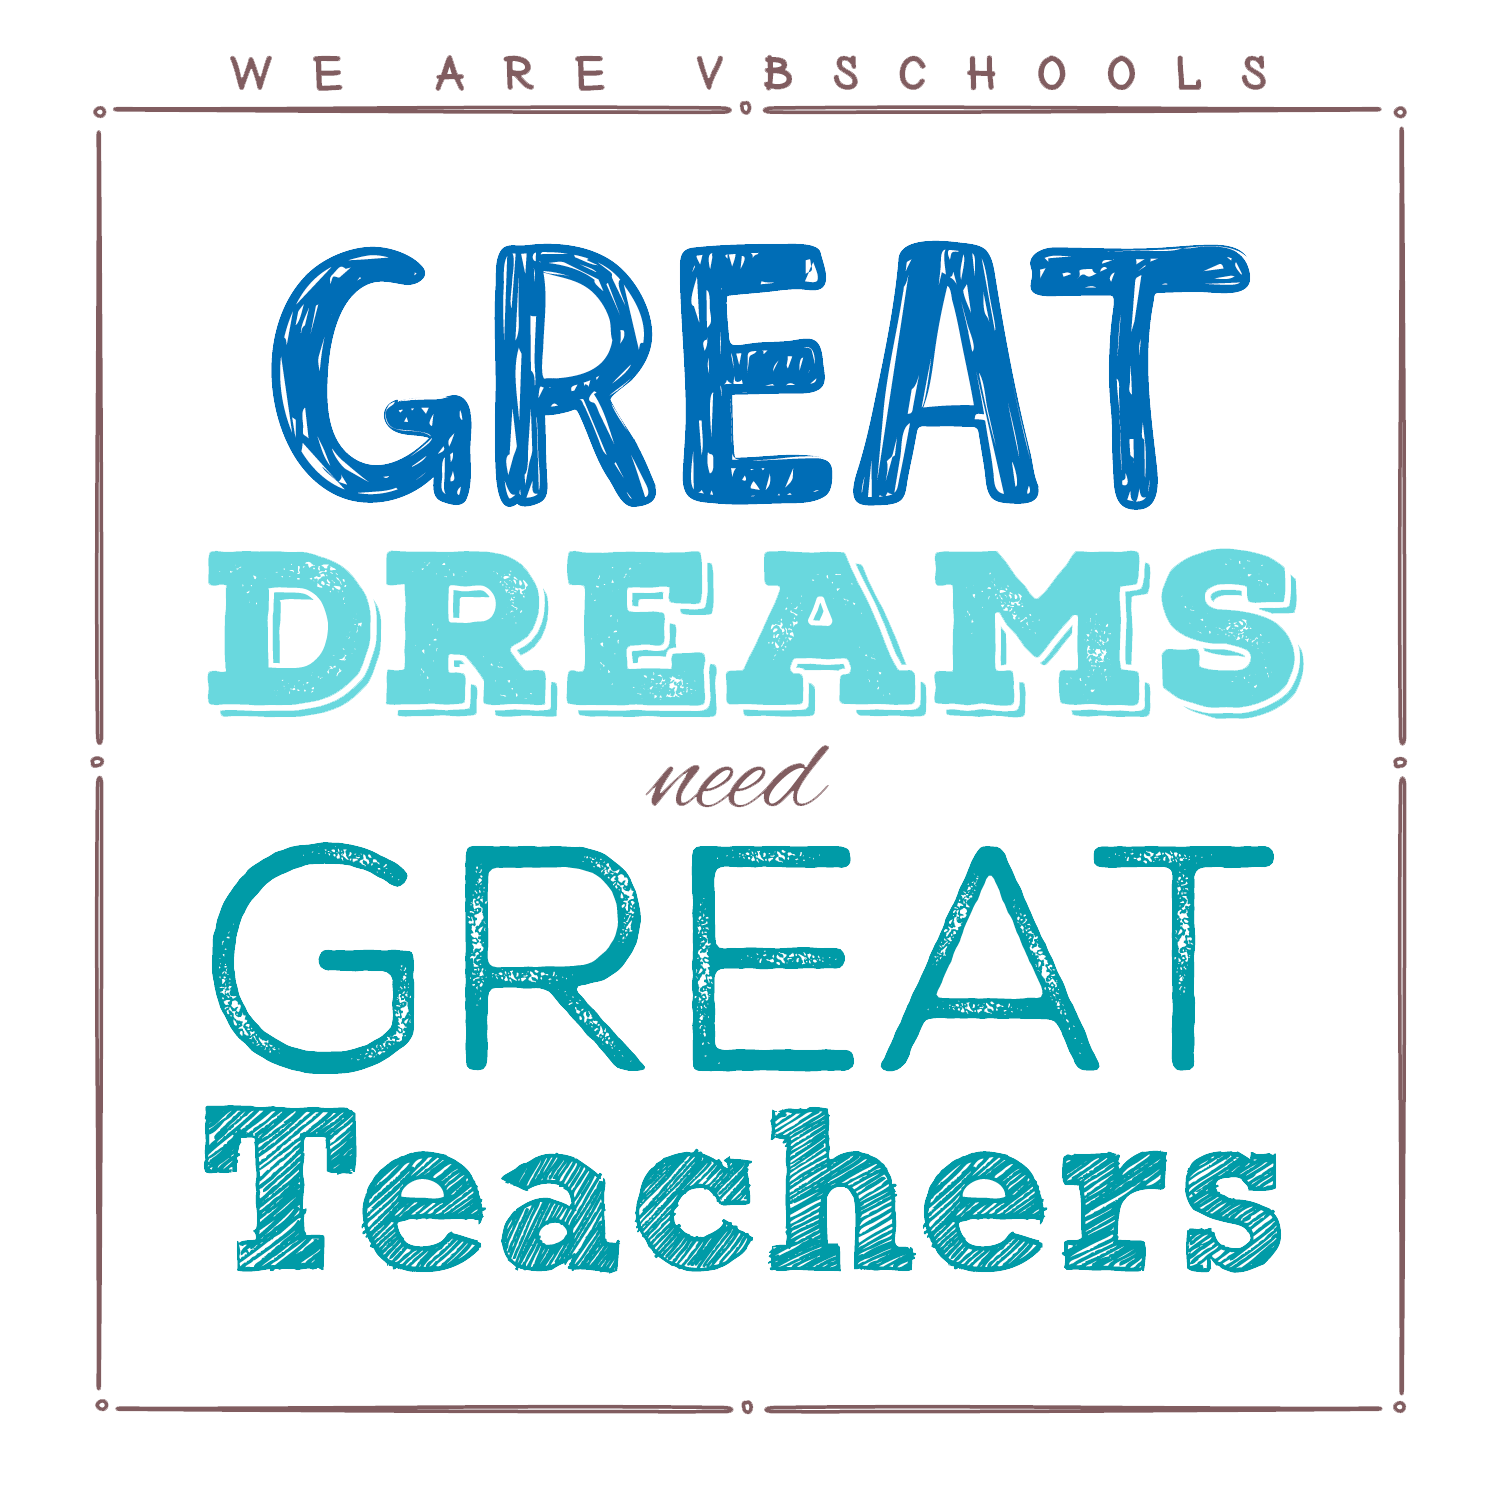 We Are VBSchools Great Dreams need Great Teachers Logo